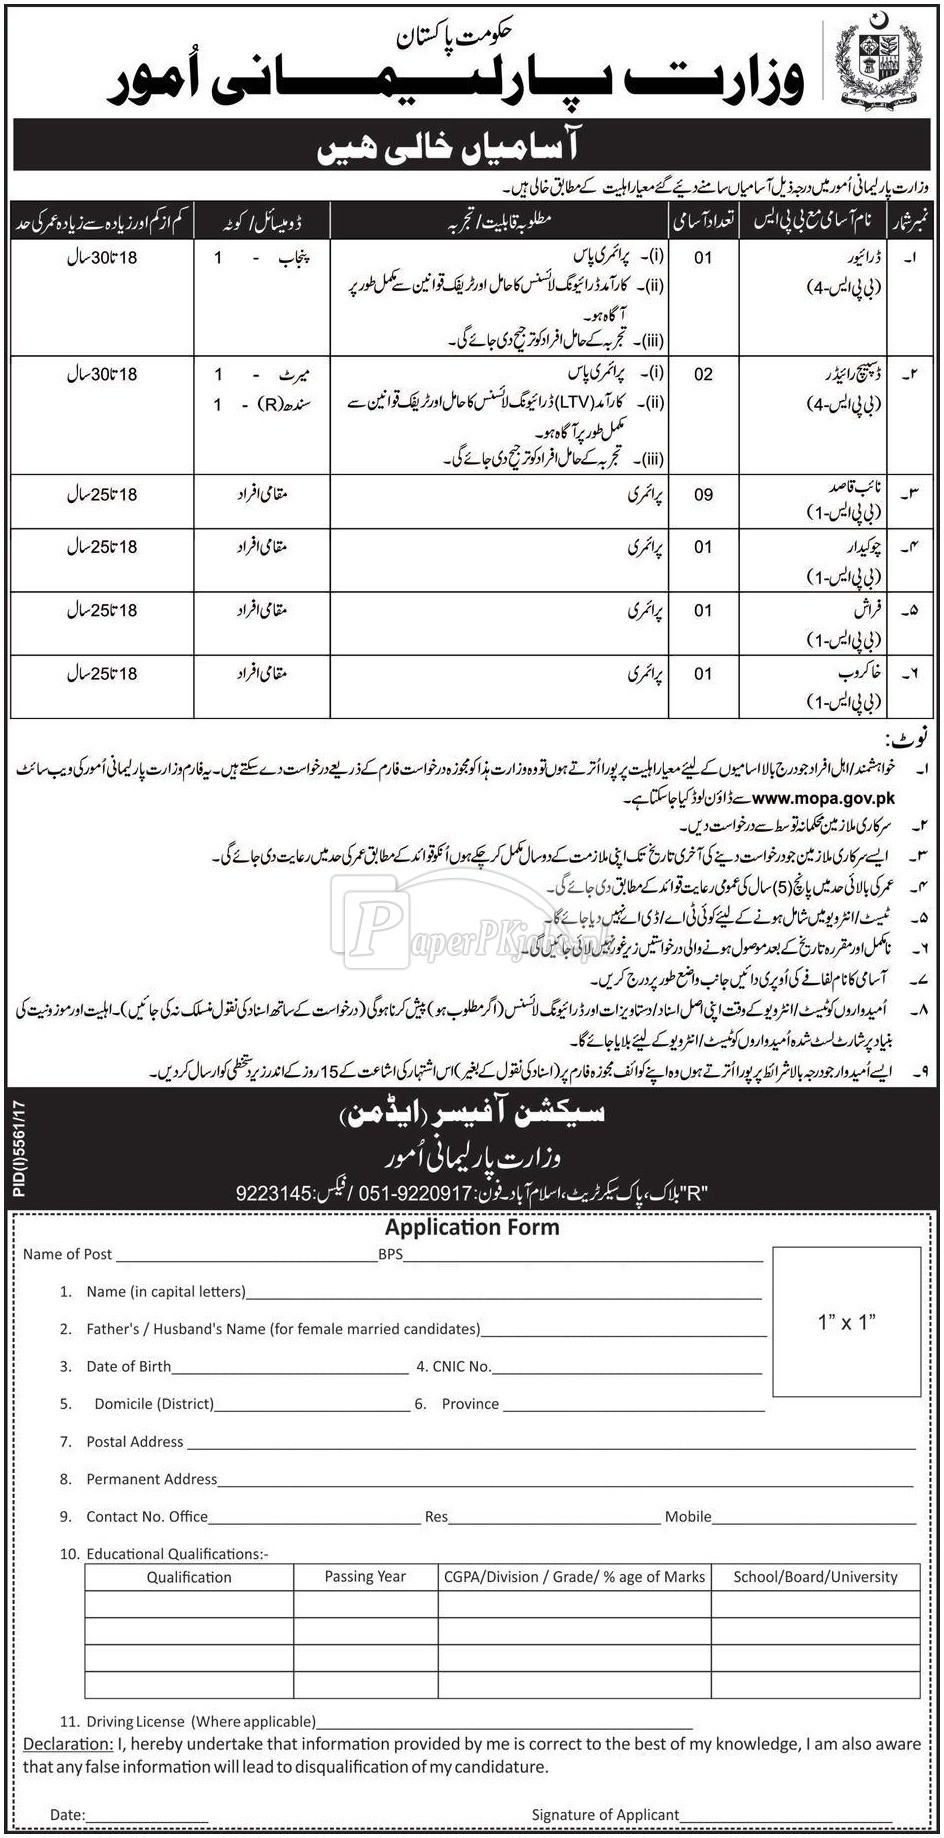 Ministry of Parliamentary Affairs Islamabad Jobs 2018